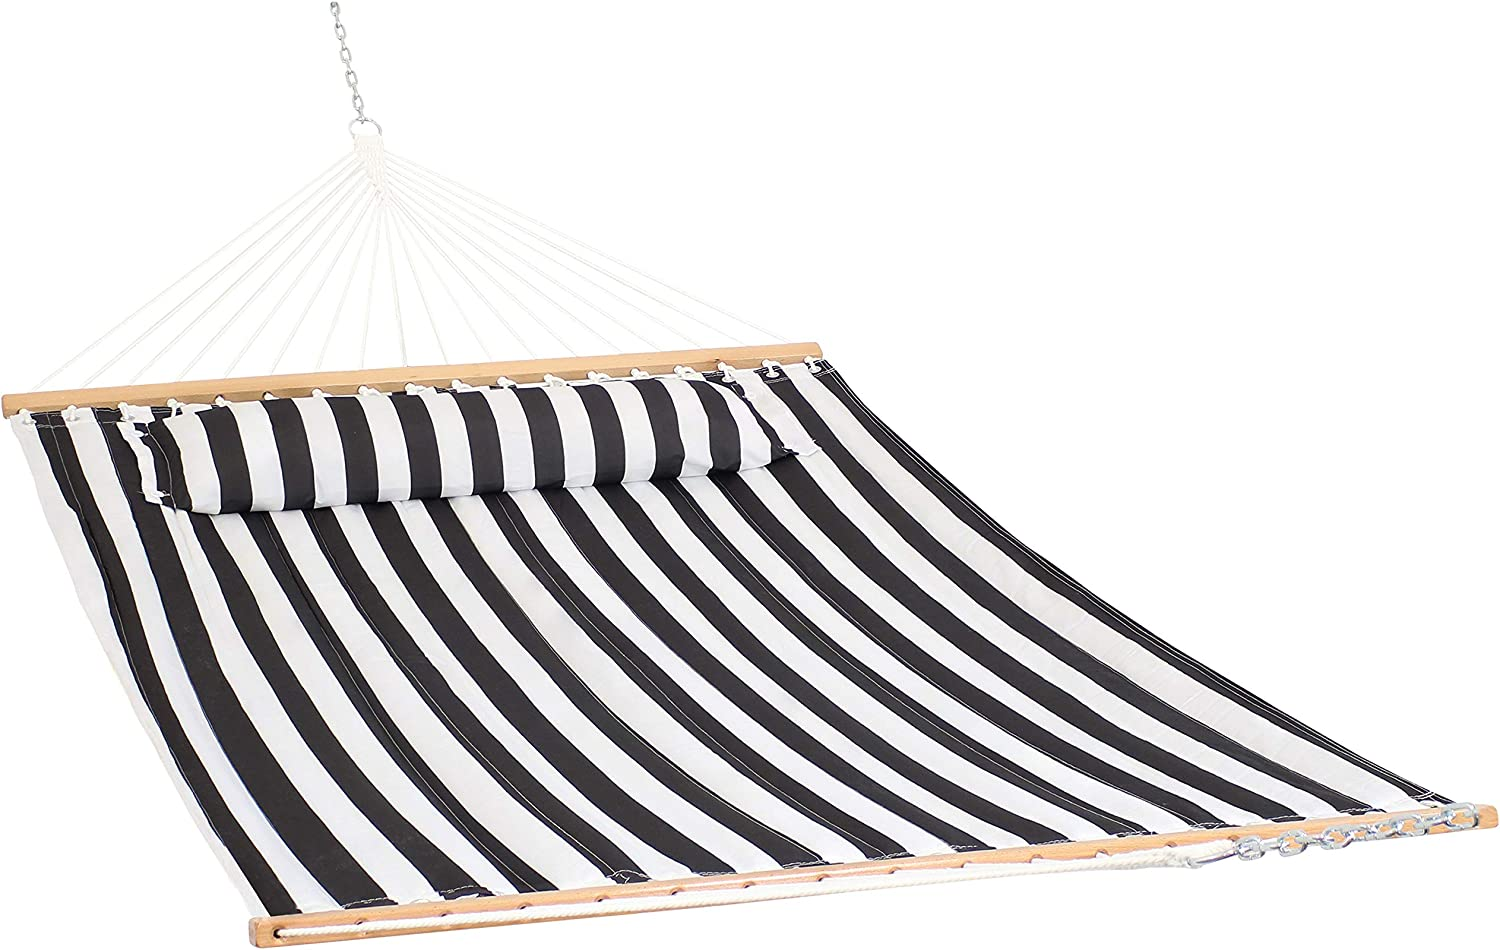 Amazon Com Sunnydaze Quilted Fabric Hammock And Pillow Two Person With Spreader Bars Heavy Duty 450 Pound Capacity Black And White Garden Outdoor